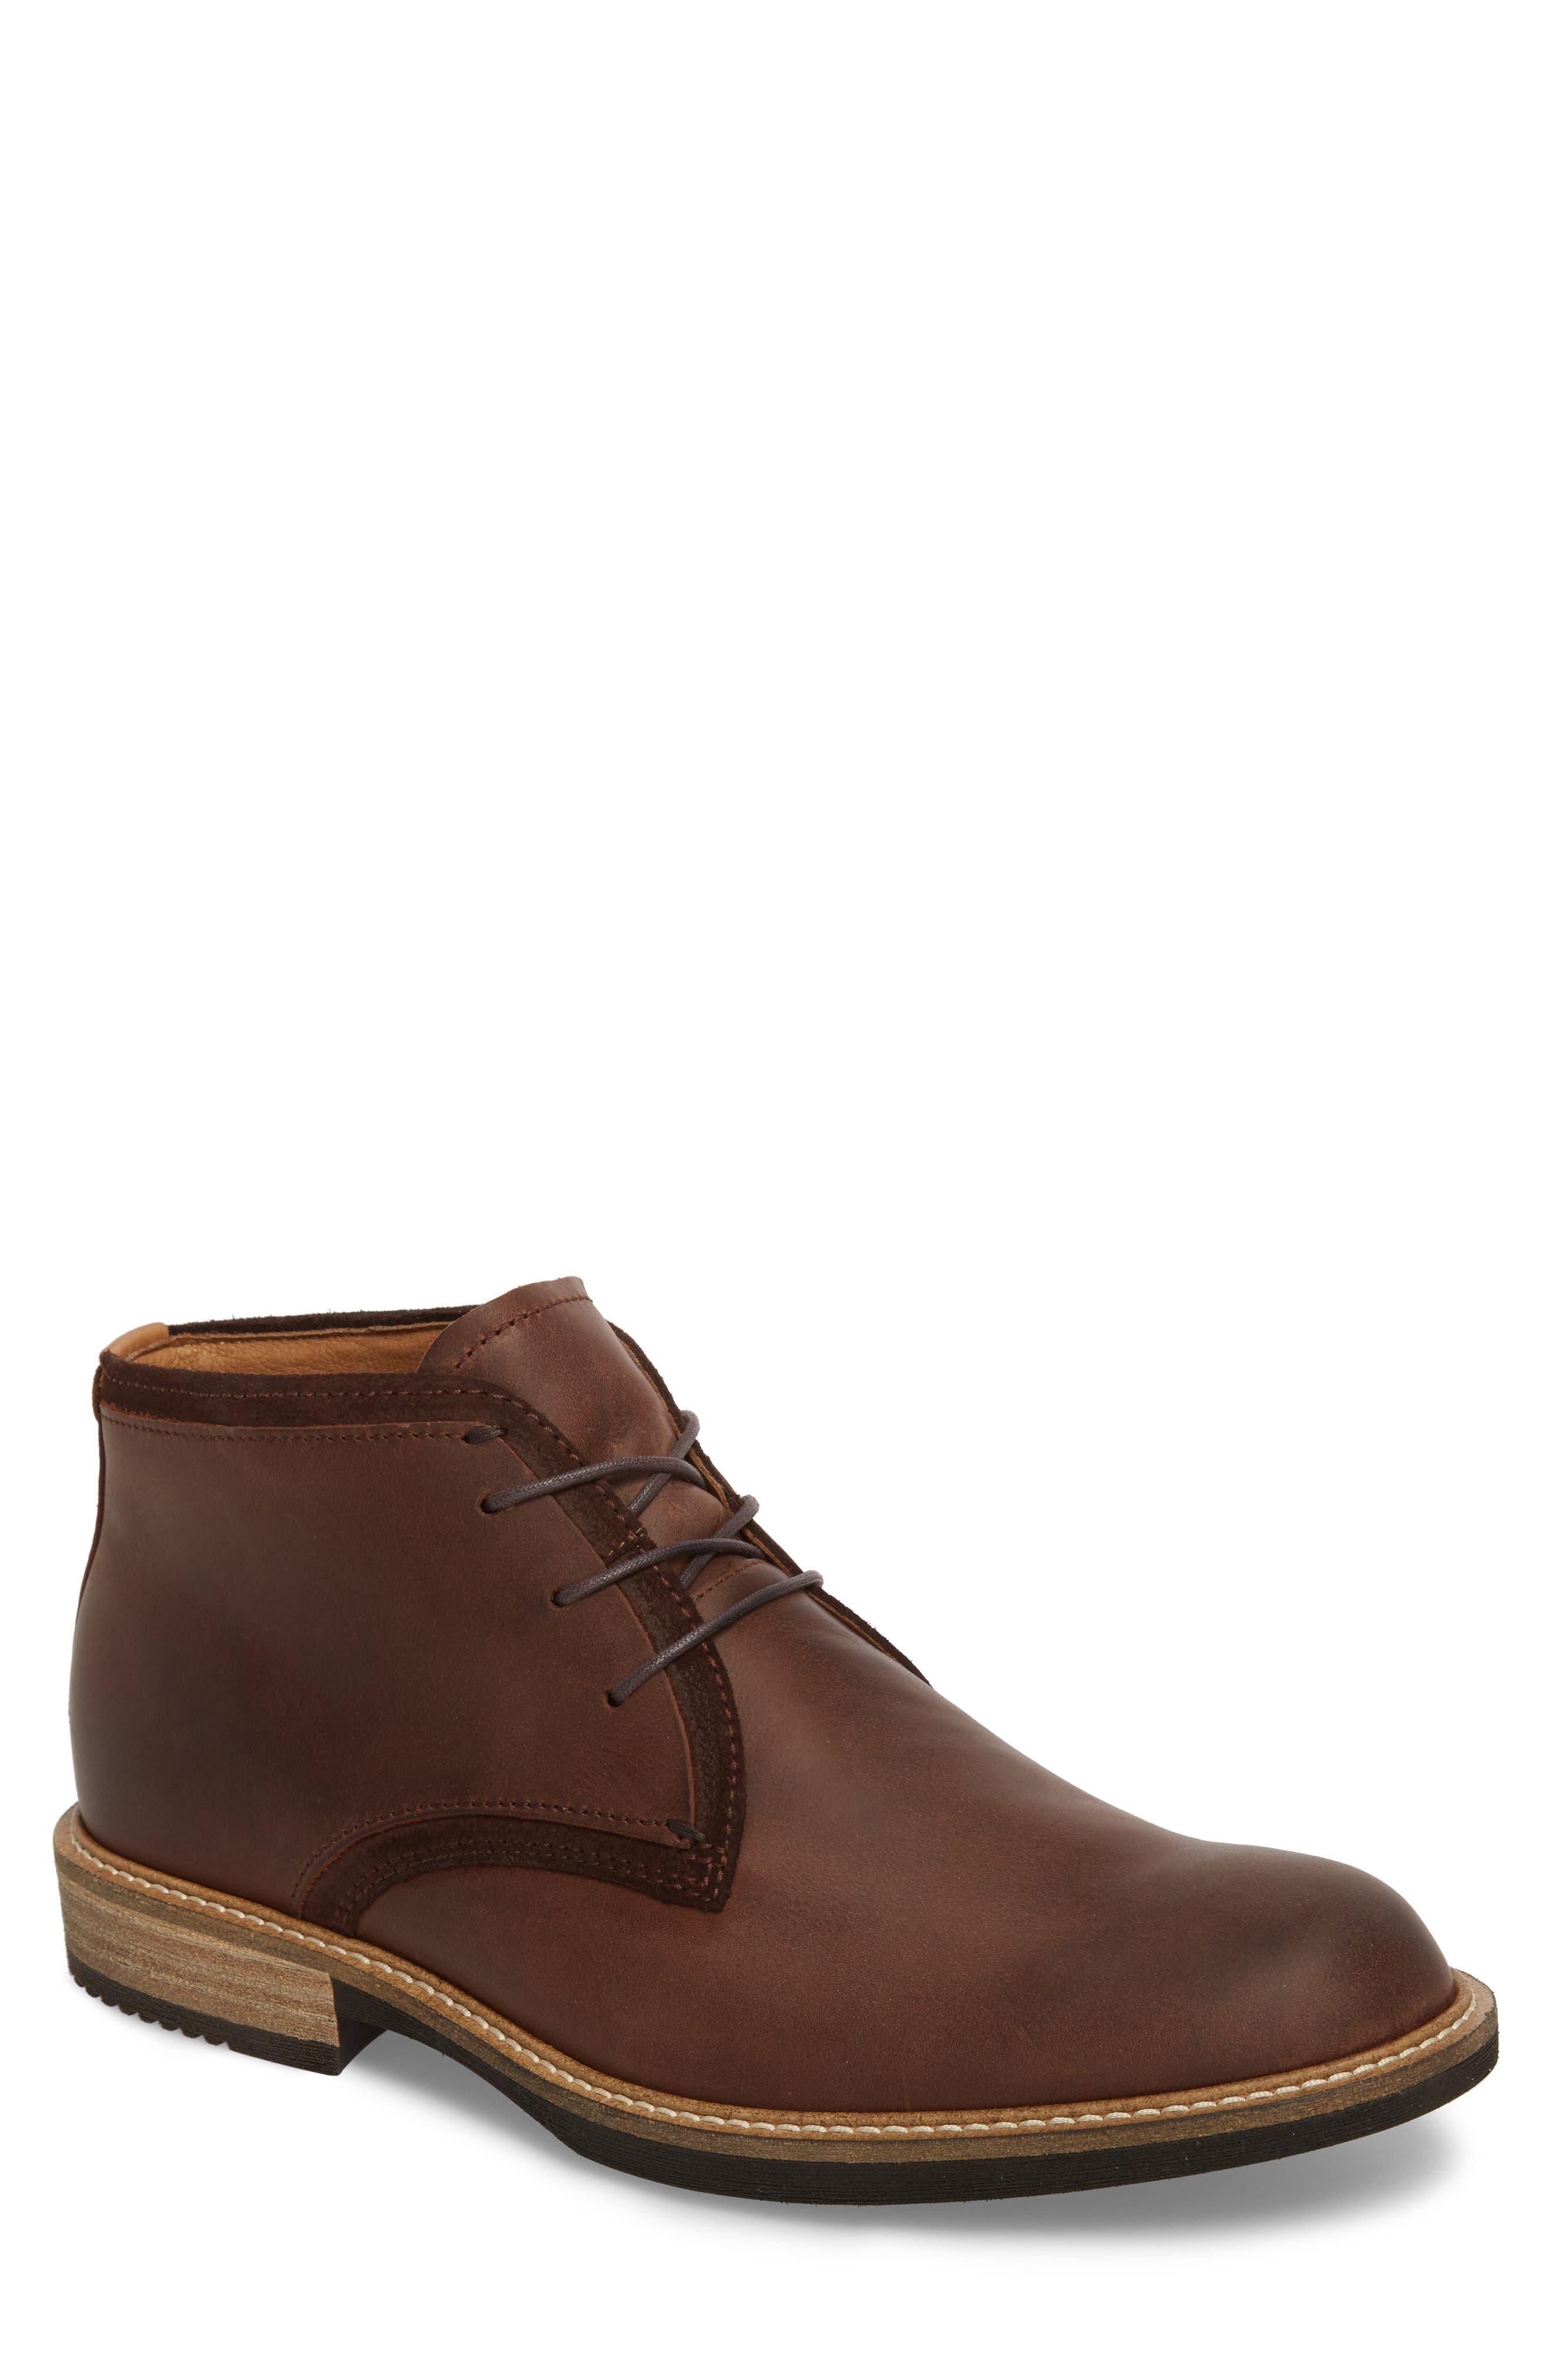 Kenton Derby Chukka Boot,                             Main thumbnail 1, color,                             Mink Leather